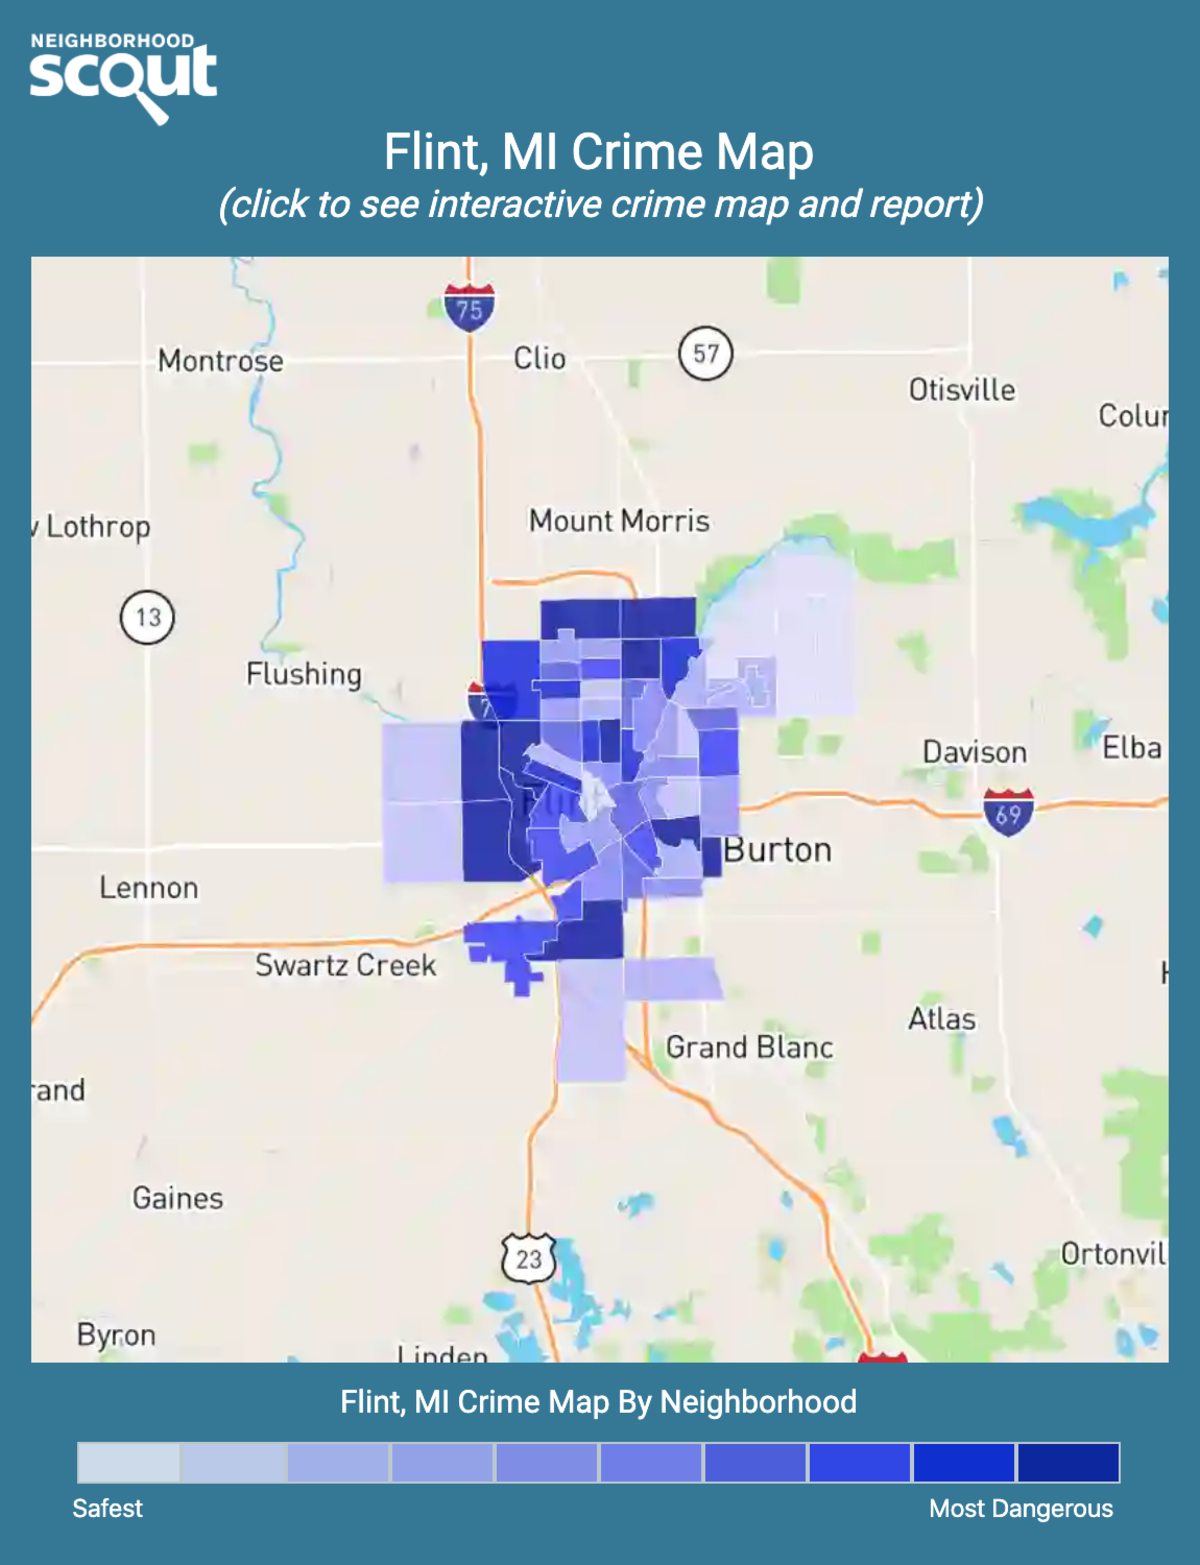 Flint, Michigan crime map